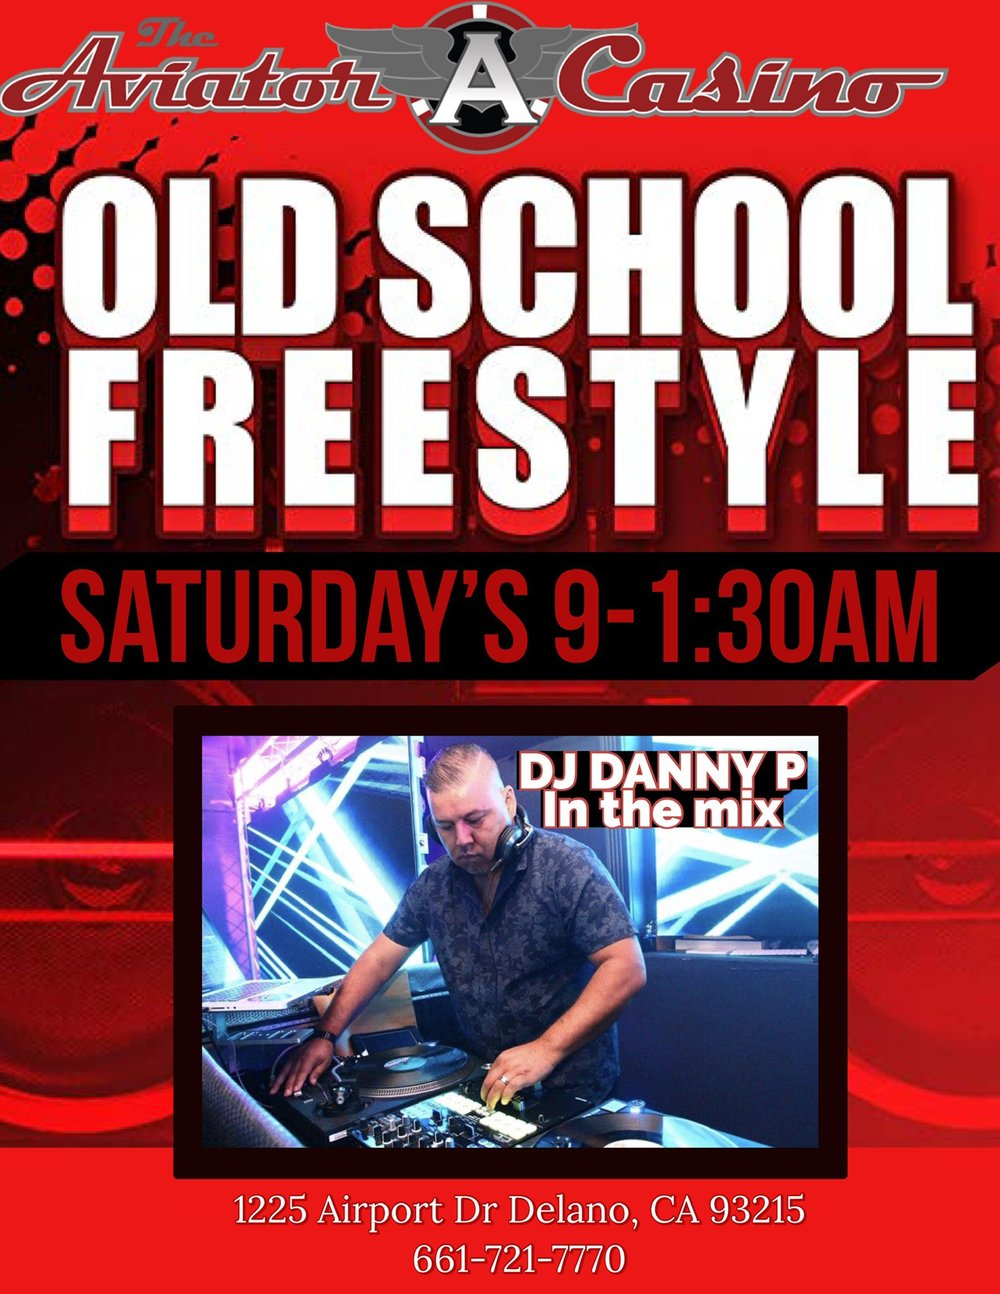 - Every Saturday from 9PM-1:30AM, DJ Danny P will be in the mix at the Aviator Casino playing the best of old school Freestyle music!